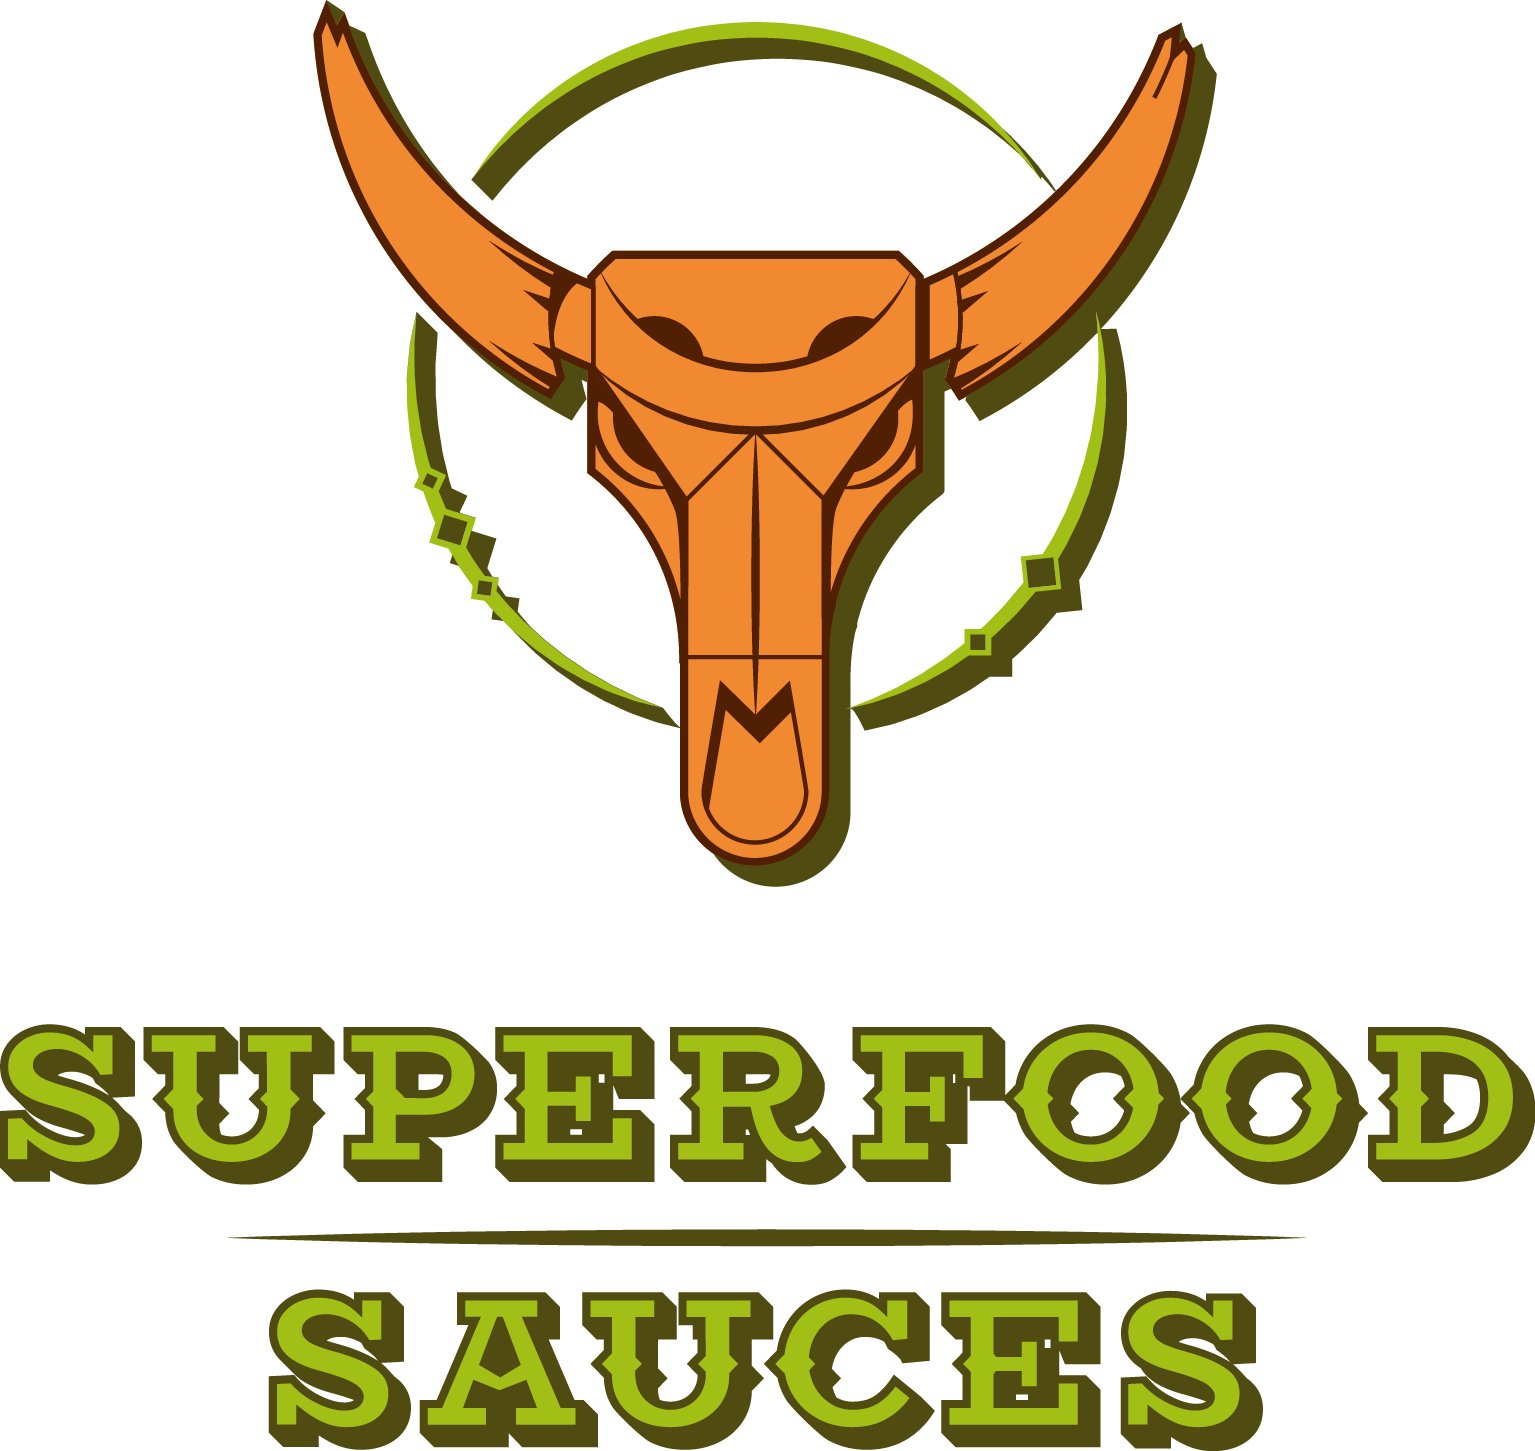 Superfood Sauces